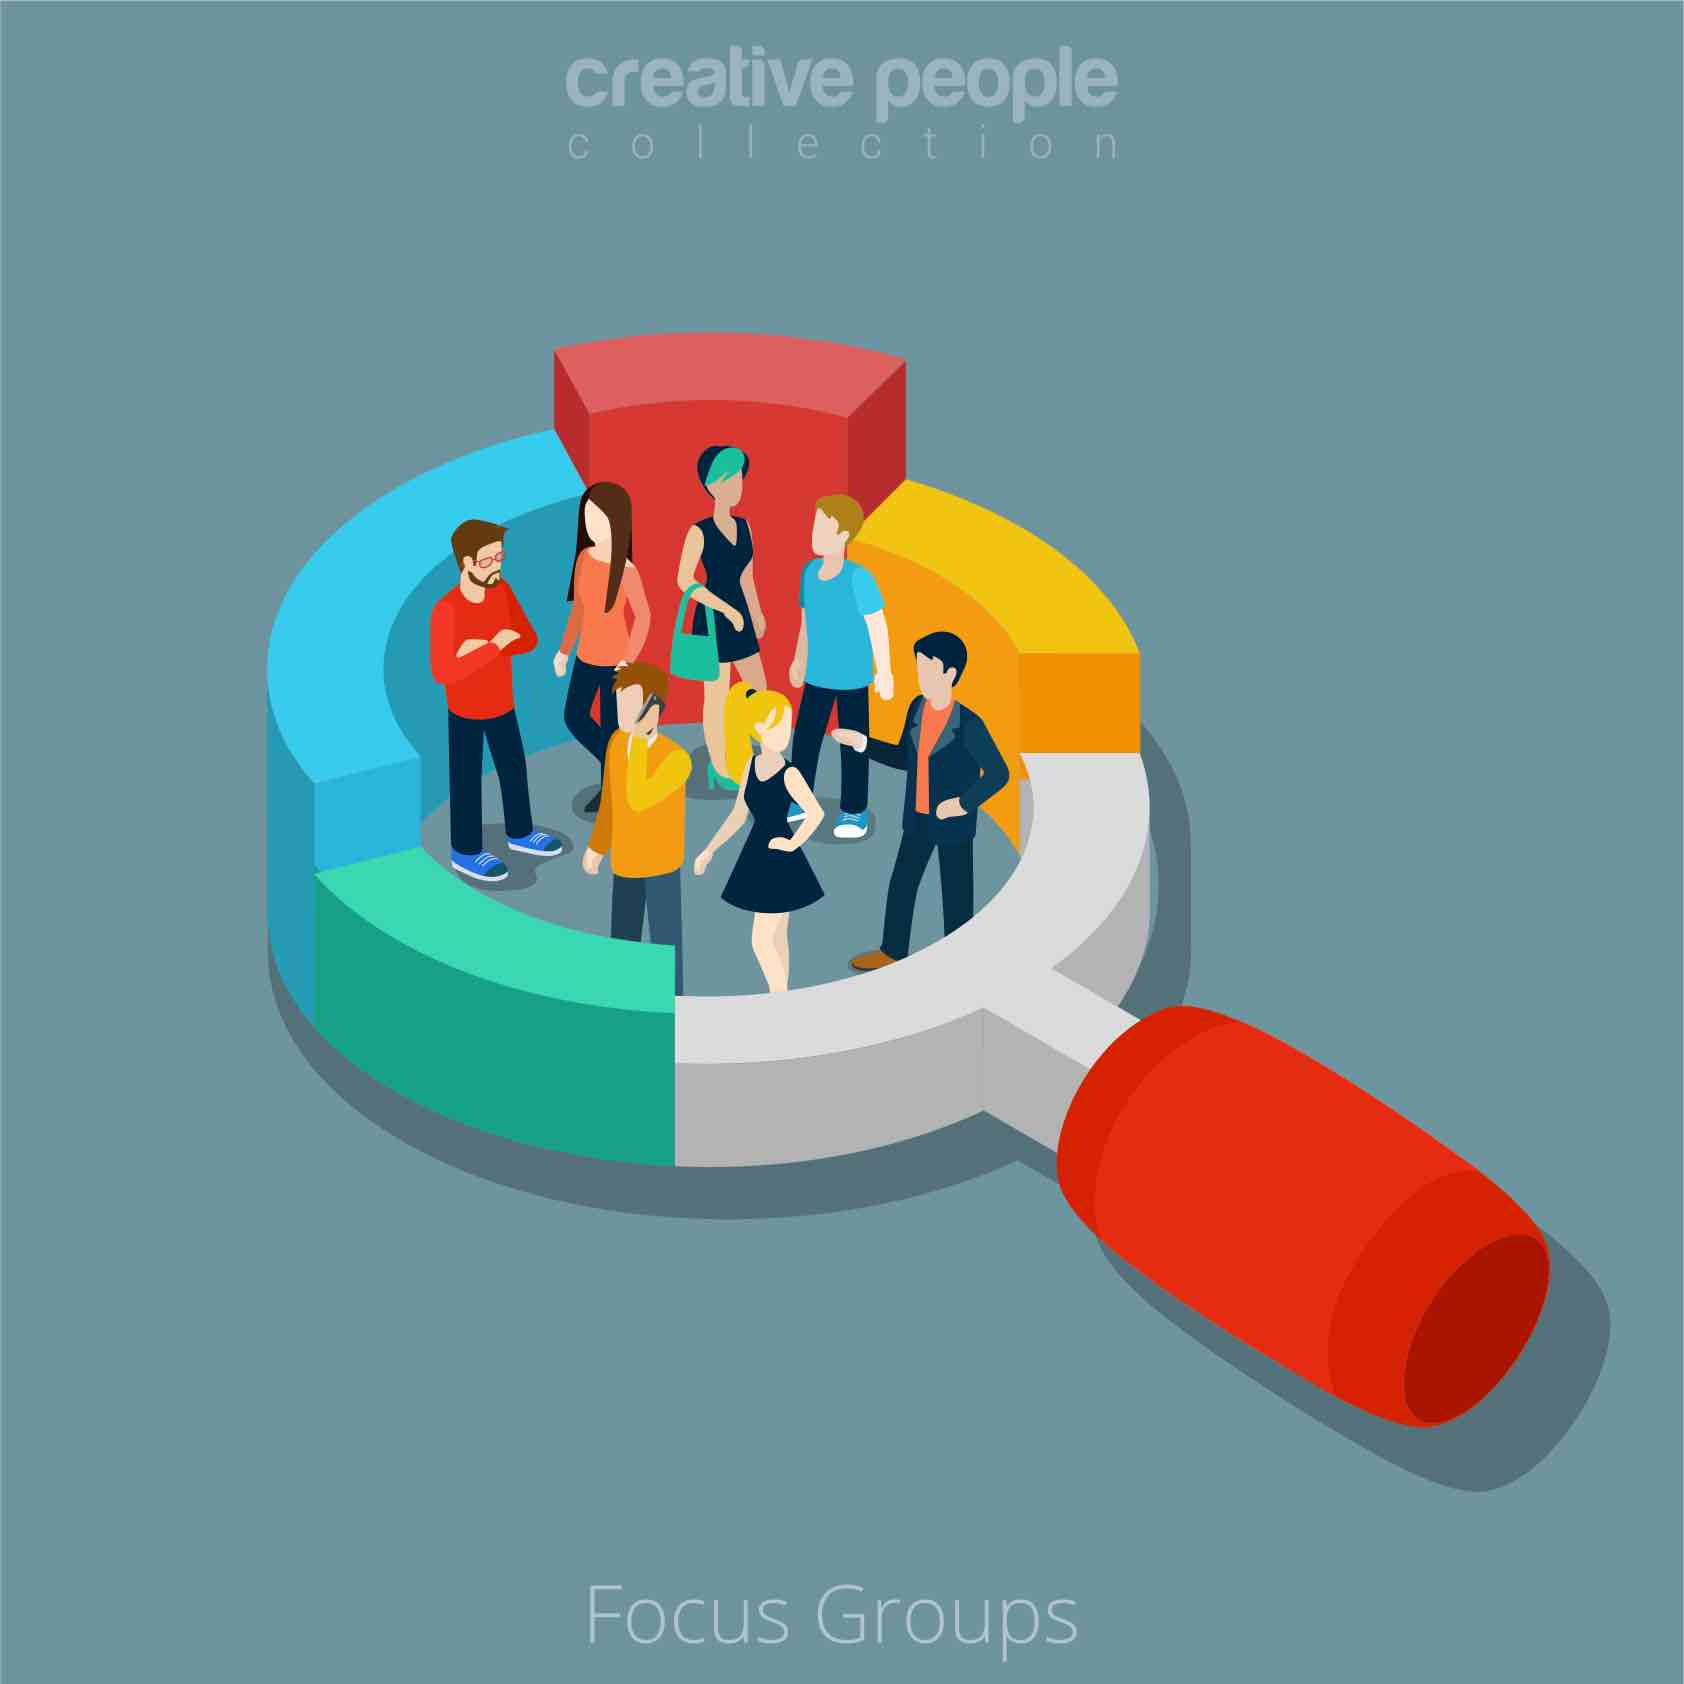 Cartoon of as group of creative people within the frame of a magnifying glass.